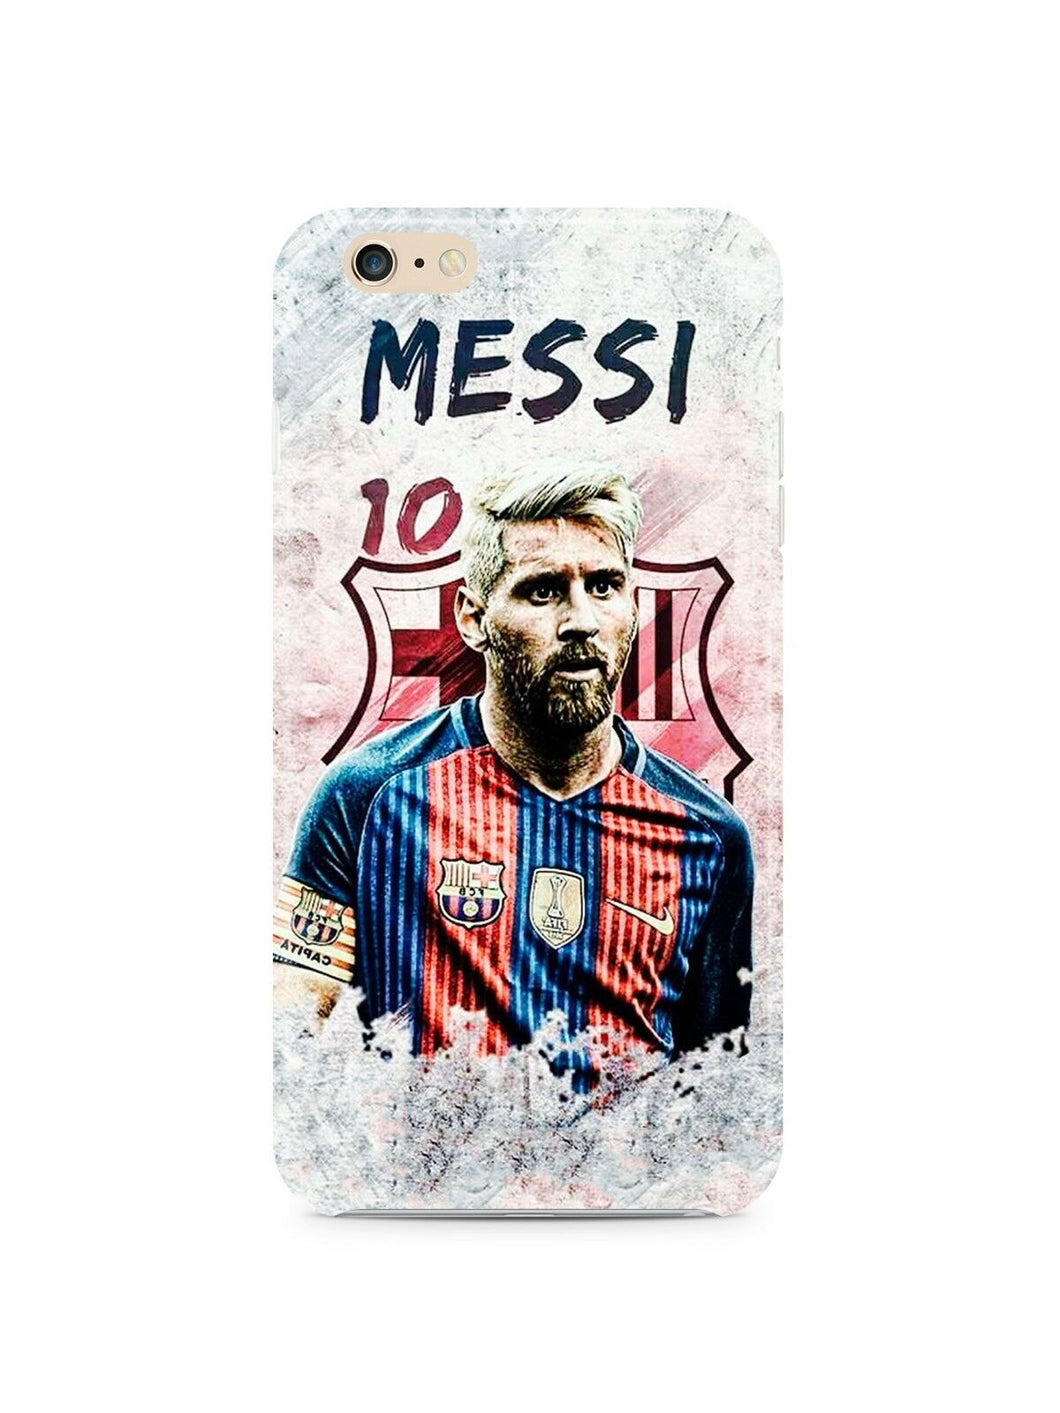 Iphone 5 6 6S 7 8 X XS Max XR 11 12 Pro Plus SE Case Cover Leo Messi  Soccer n6